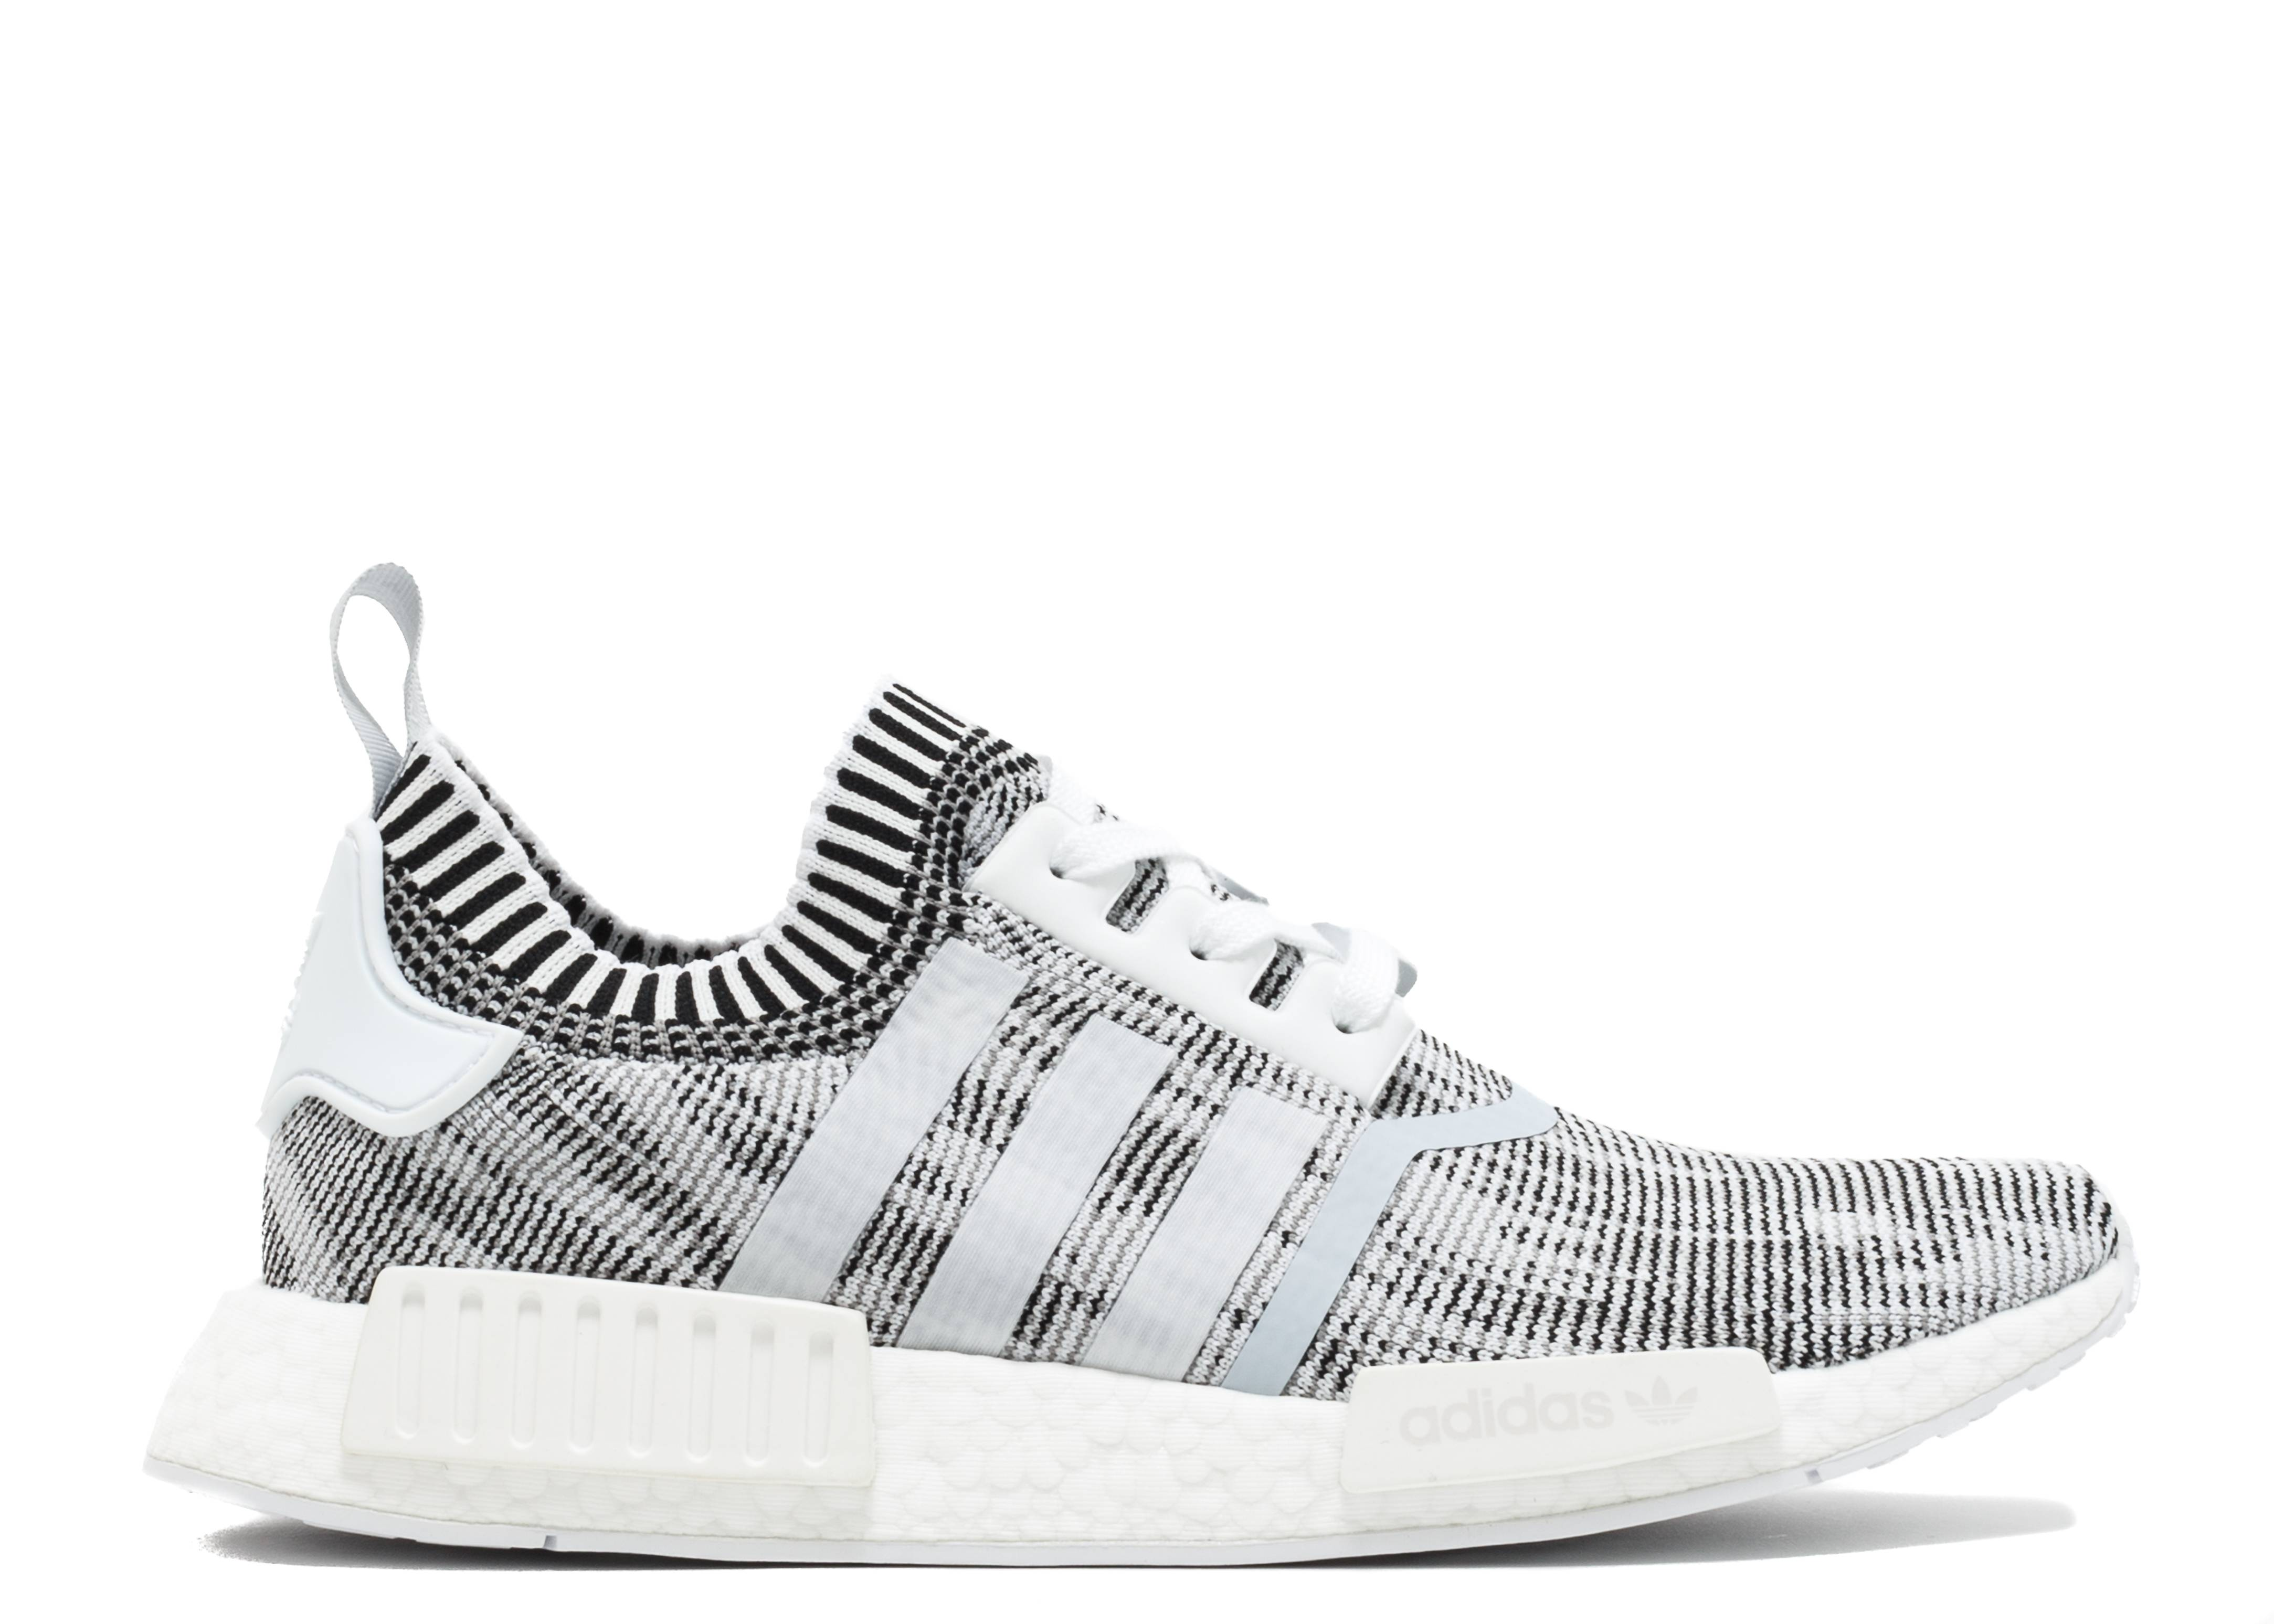 nmd r1 pk oreo adidas by1911 white grey black. Black Bedroom Furniture Sets. Home Design Ideas